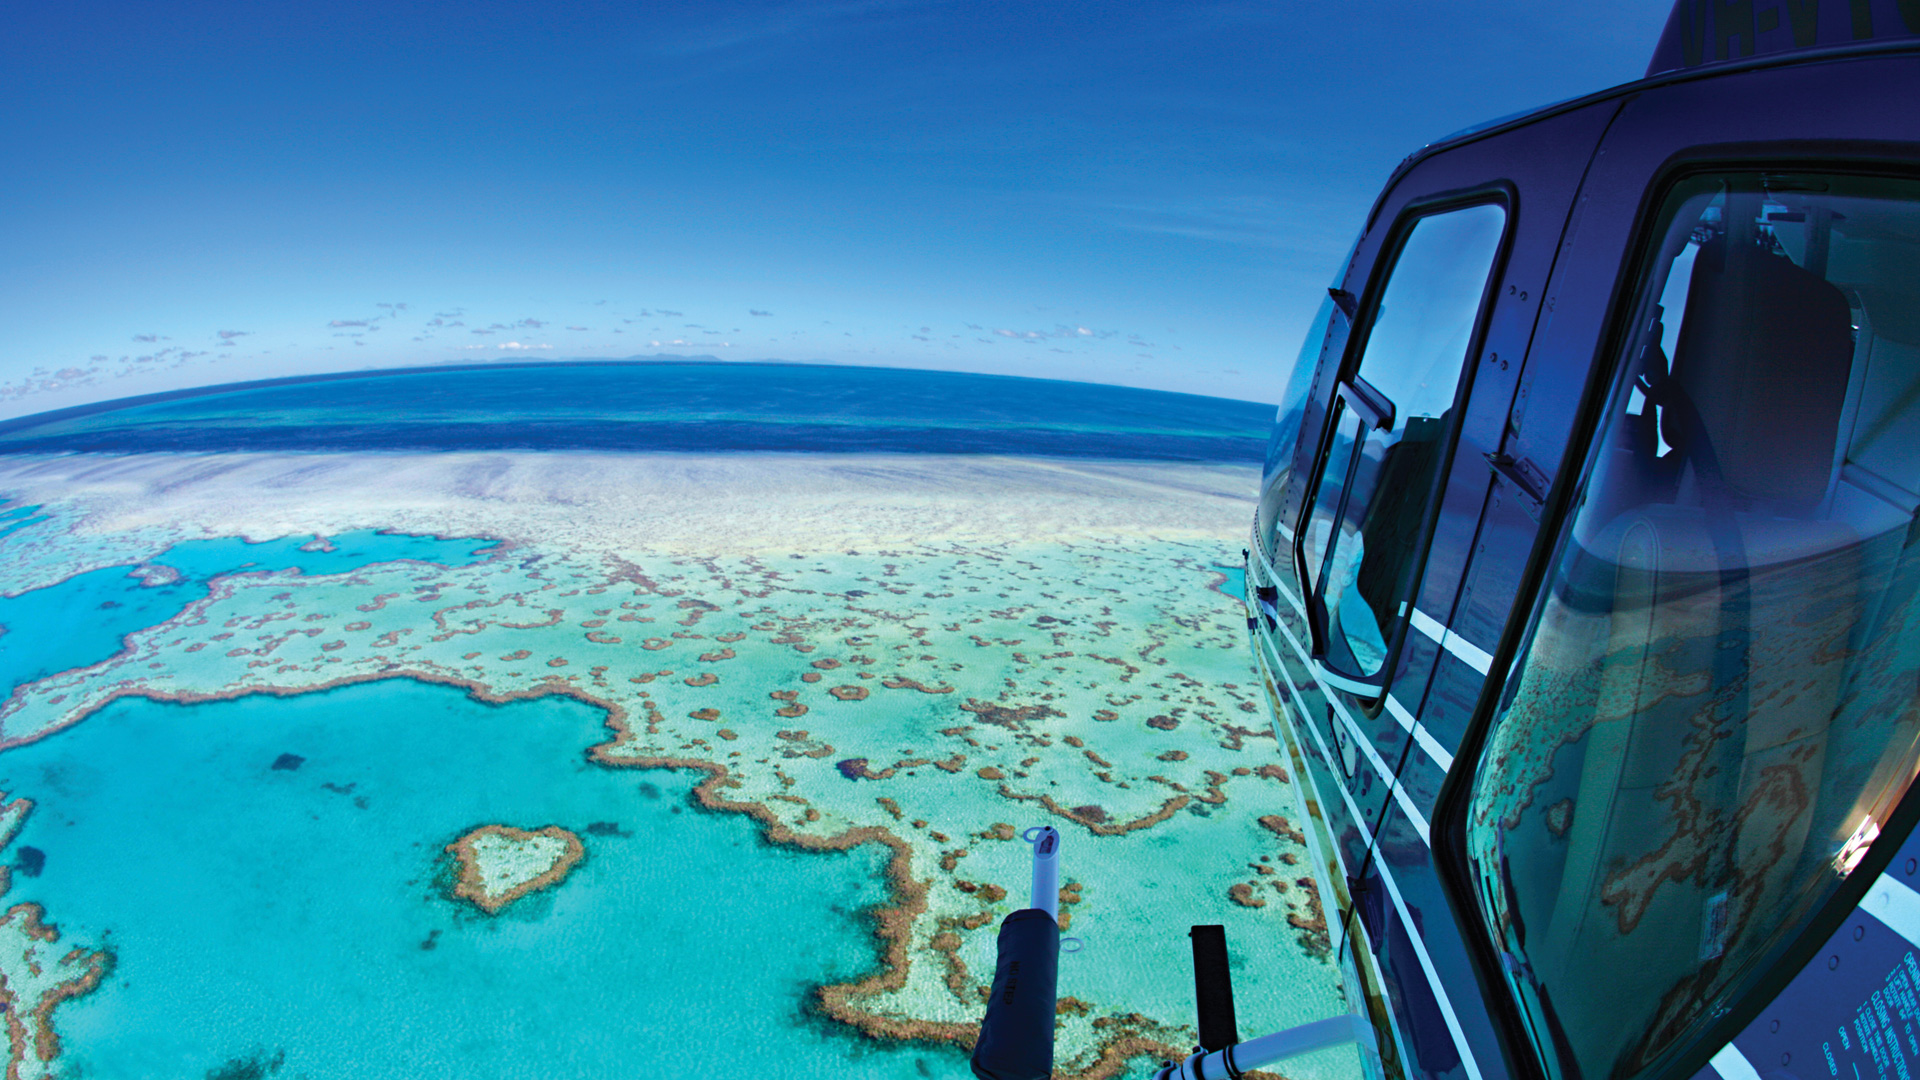 10 Reasons To Visit The Great Barrier Reef Heart Reef